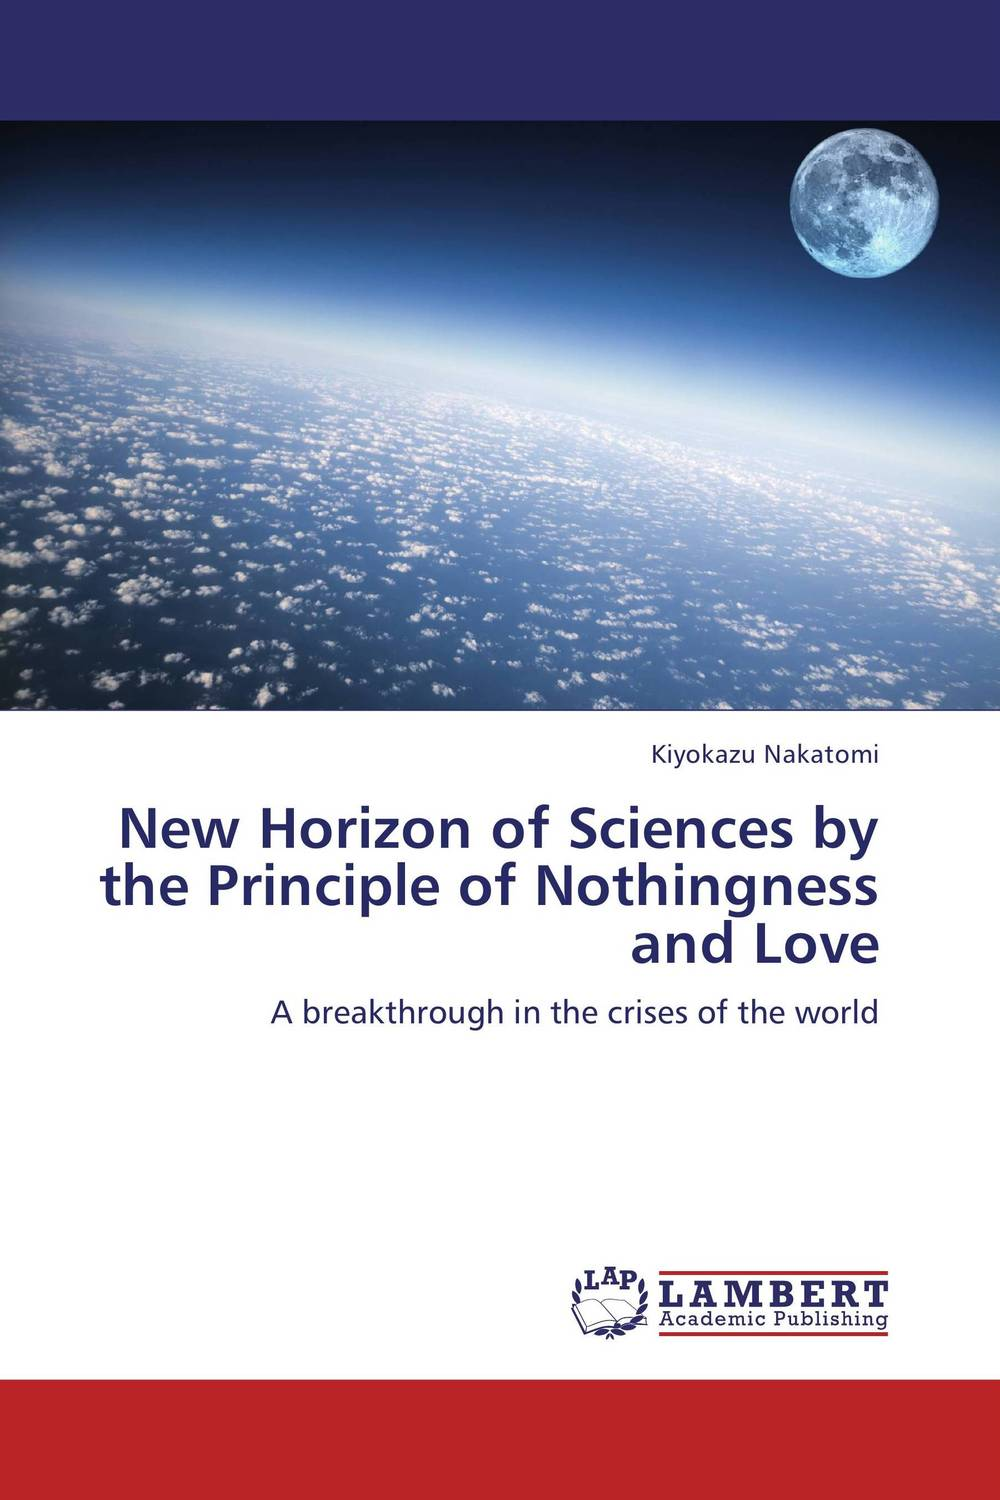 New Horizon of Sciences by the Principle of Nothingness and Love from the earth to the moon